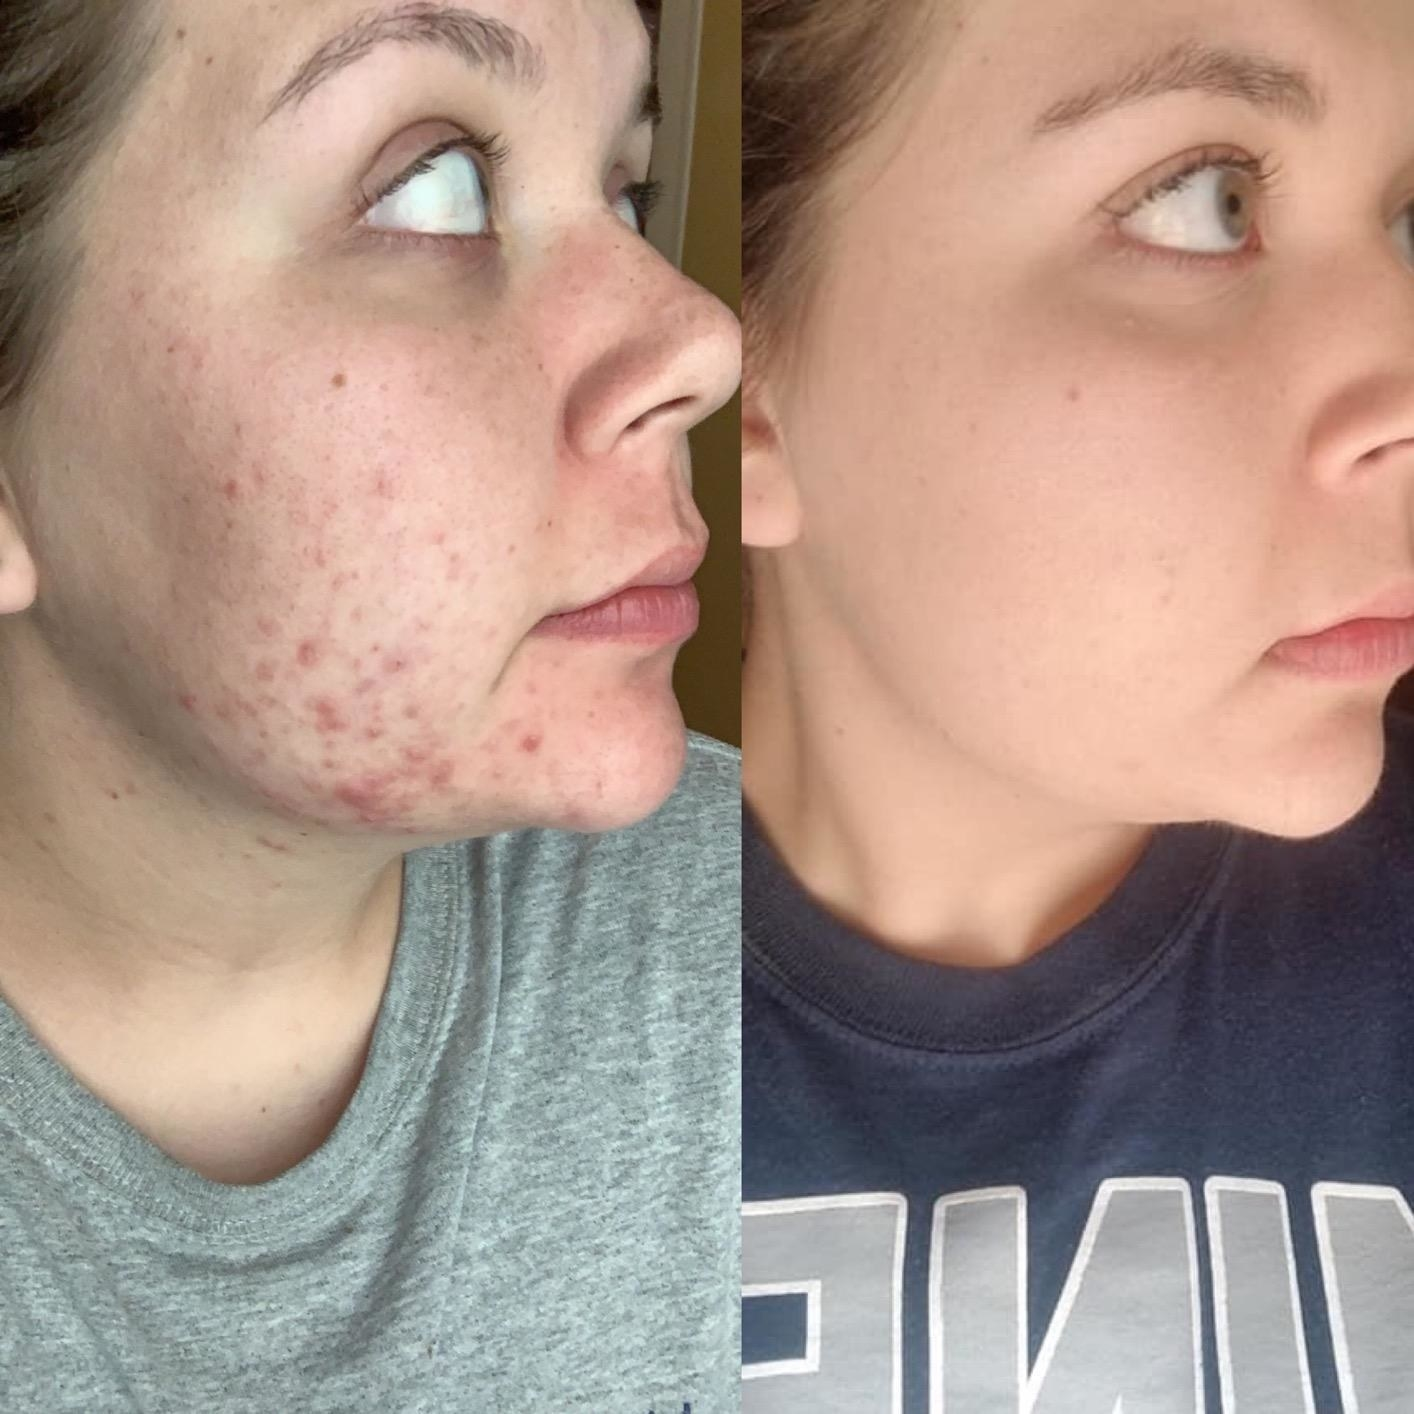 Reviewer showing their skin before and after with less severe acne after using the wash